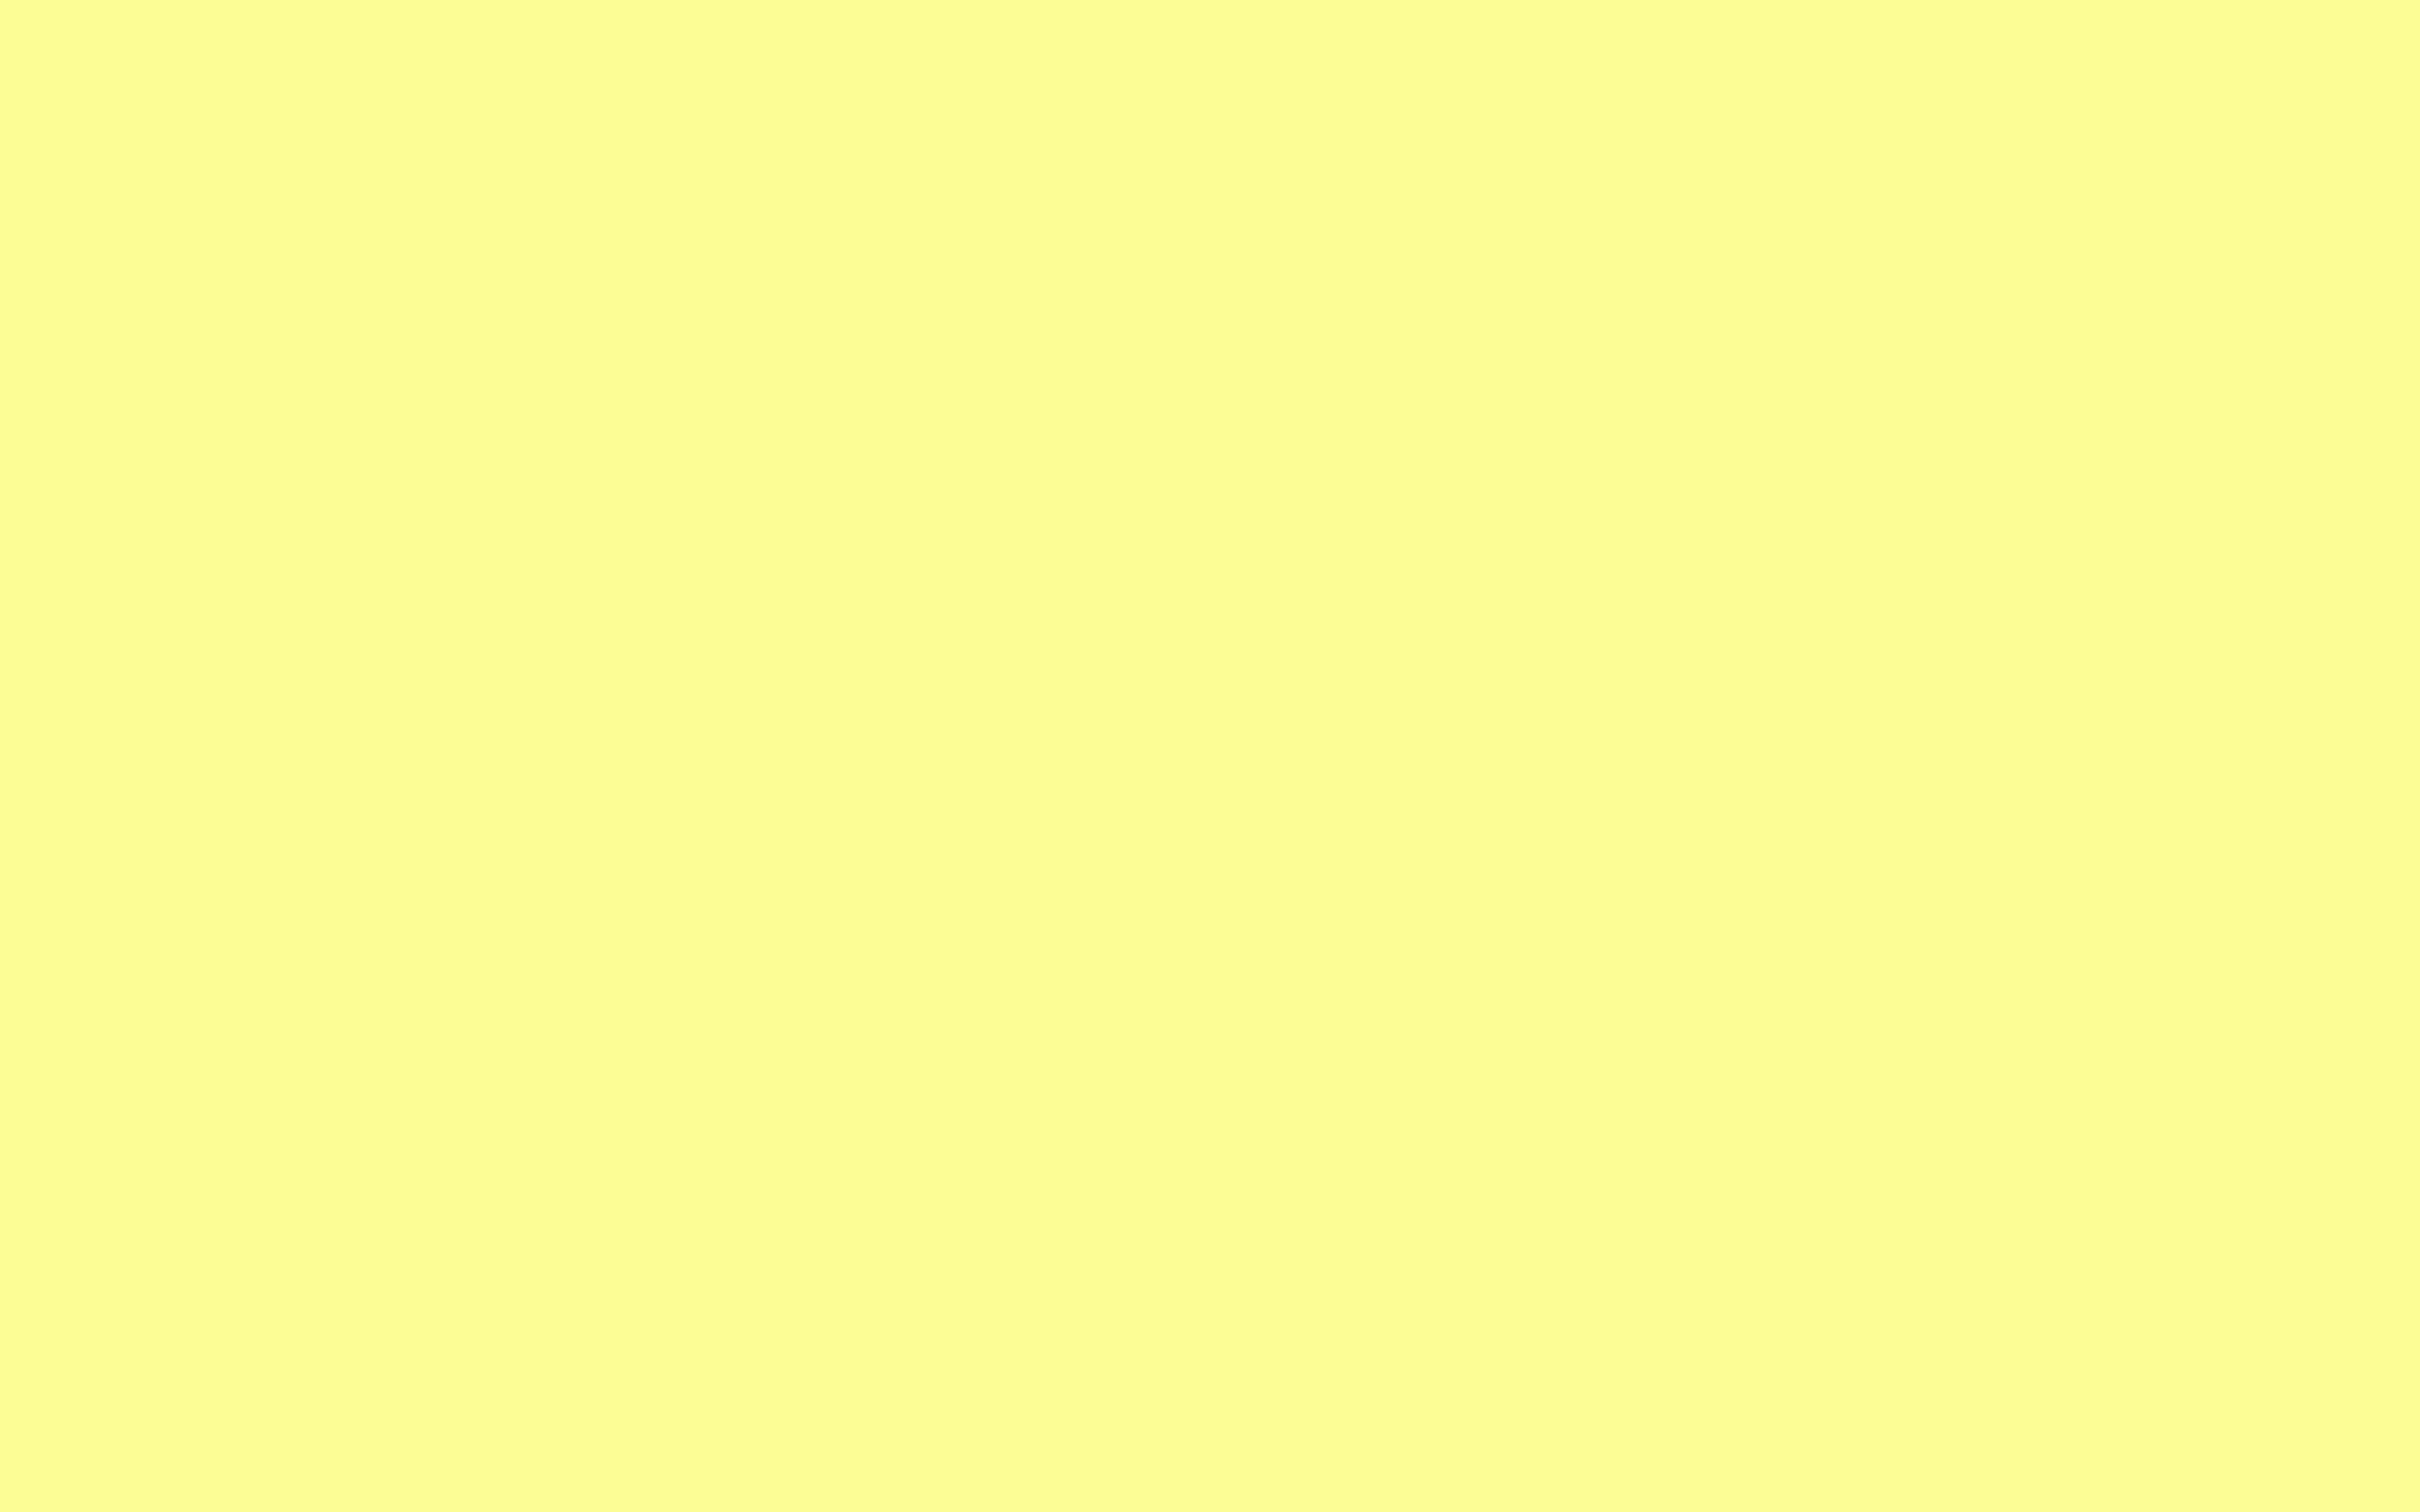 2560x1600 Pastel Yellow Solid Color Background